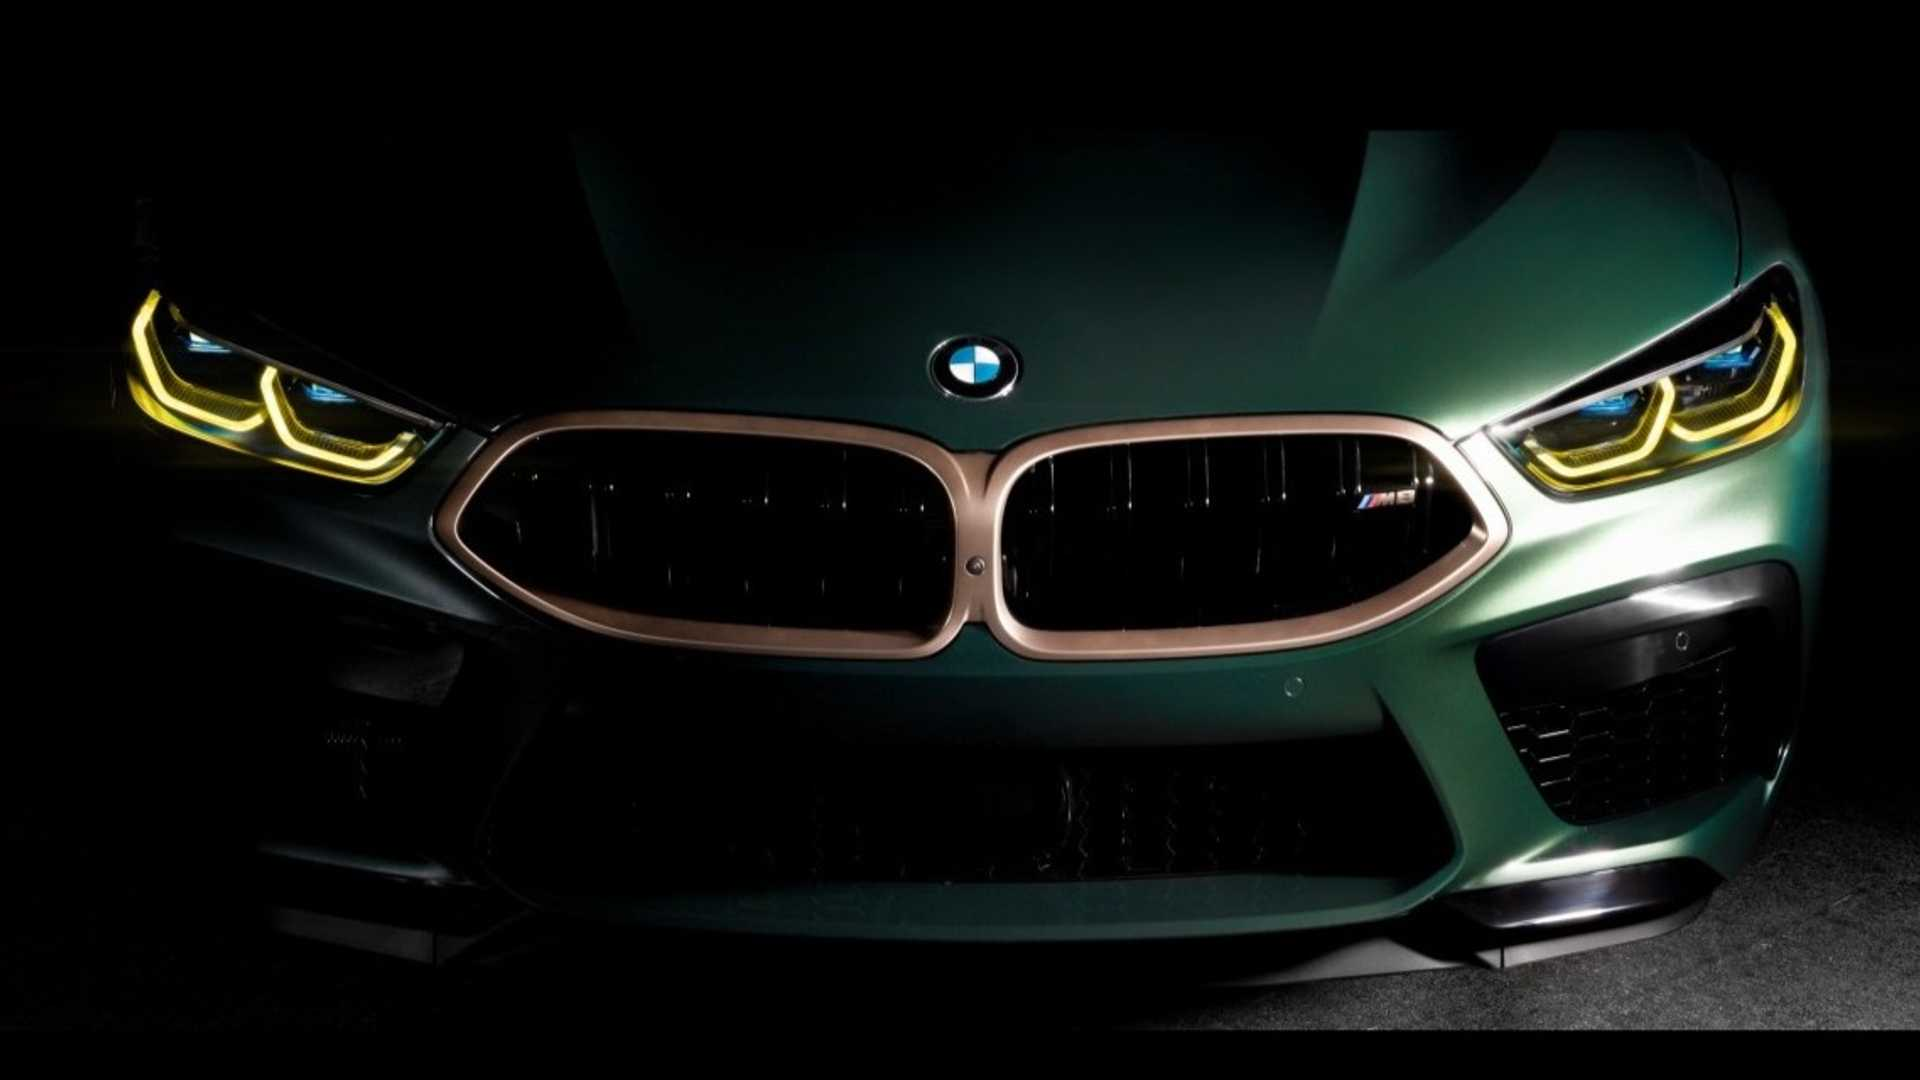 bmw-m8-gran-coupe-first-edition-8-of-8-2